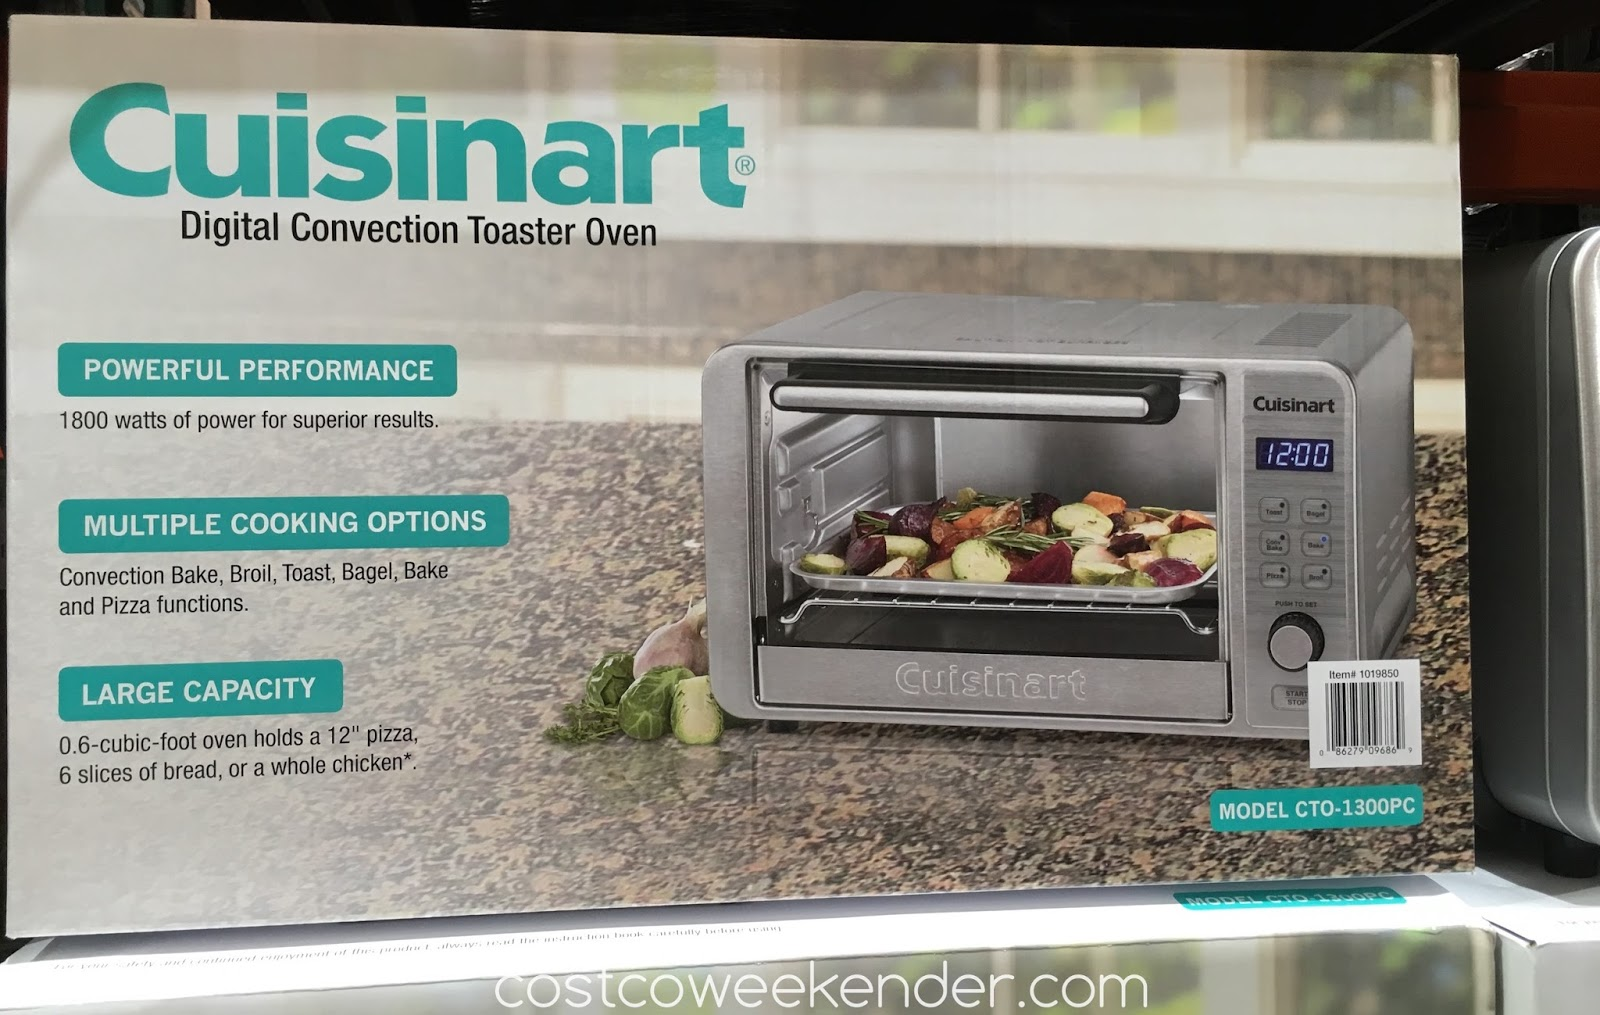 Cuisinart CTO 1300PC Digital Convection Toaster Oven   Powerful  Performance, Multiple Cooking Options,